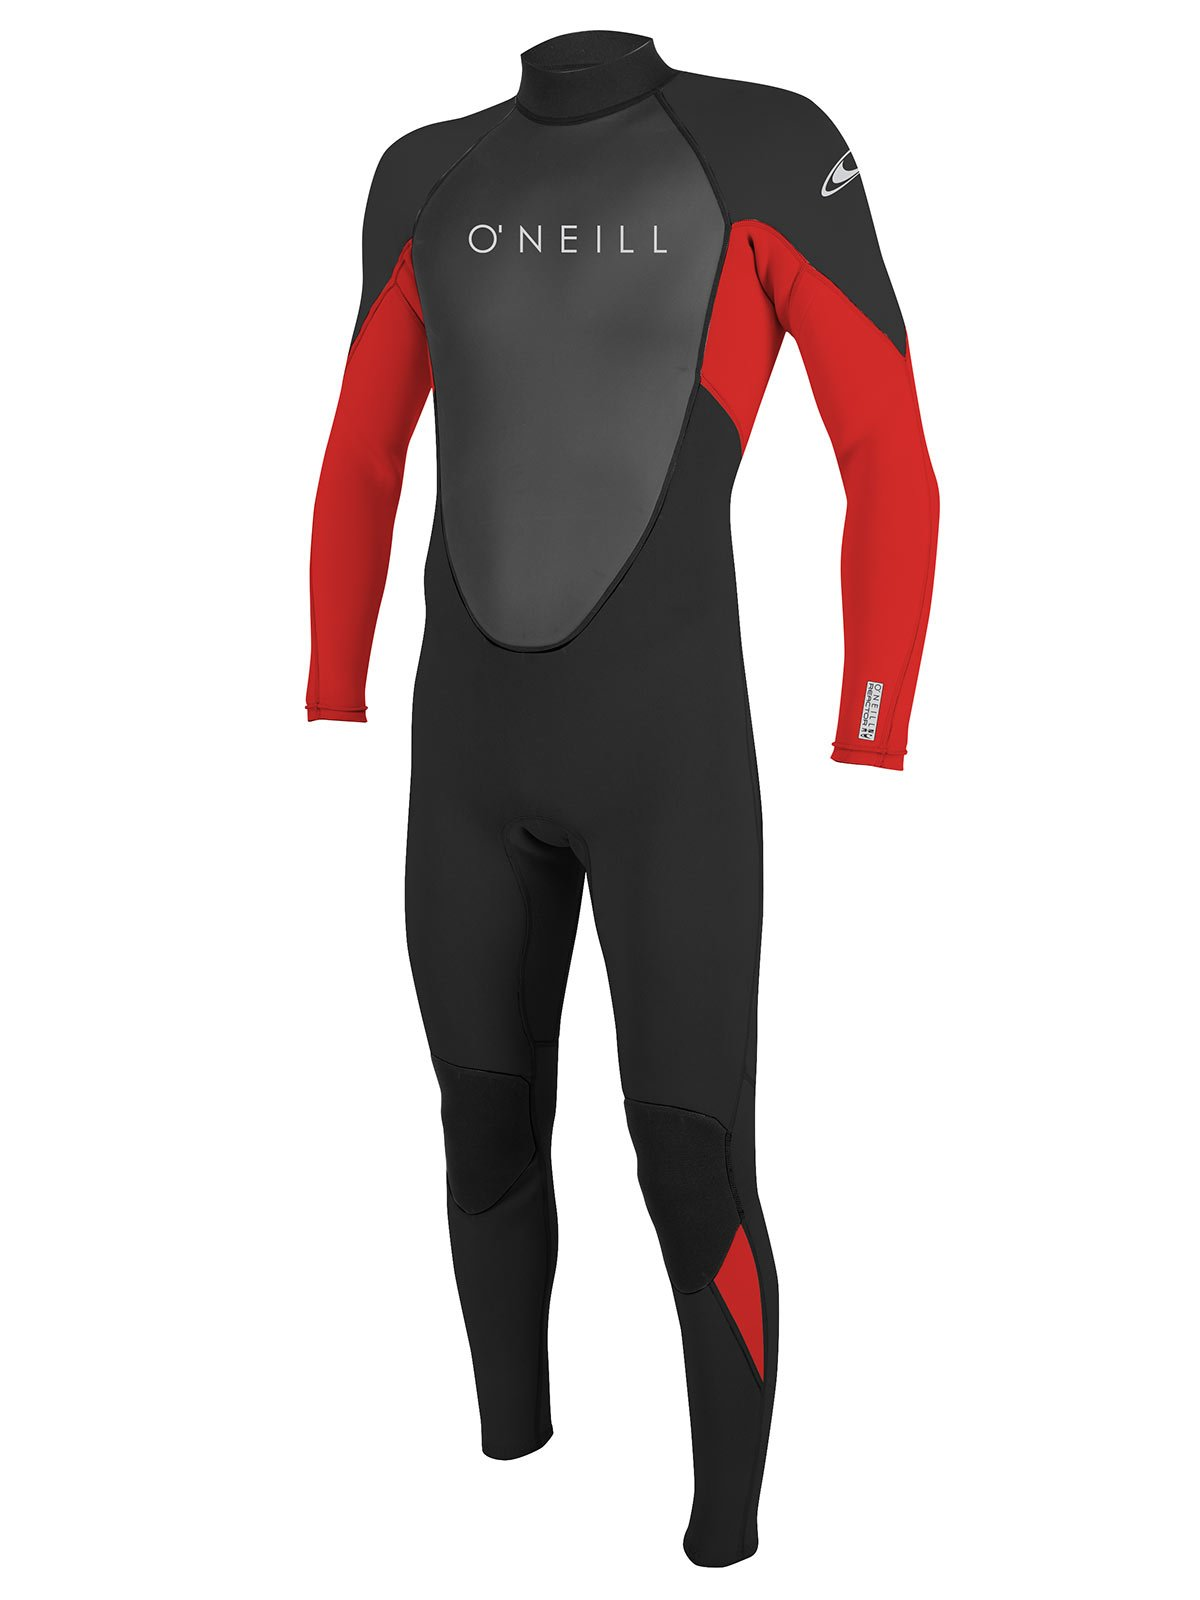 O'Neill Reactor 2 Men's 3/2mm Full Wetsuit M-Tall Black/red/black (5283IS) by O'Neill Wetsuits